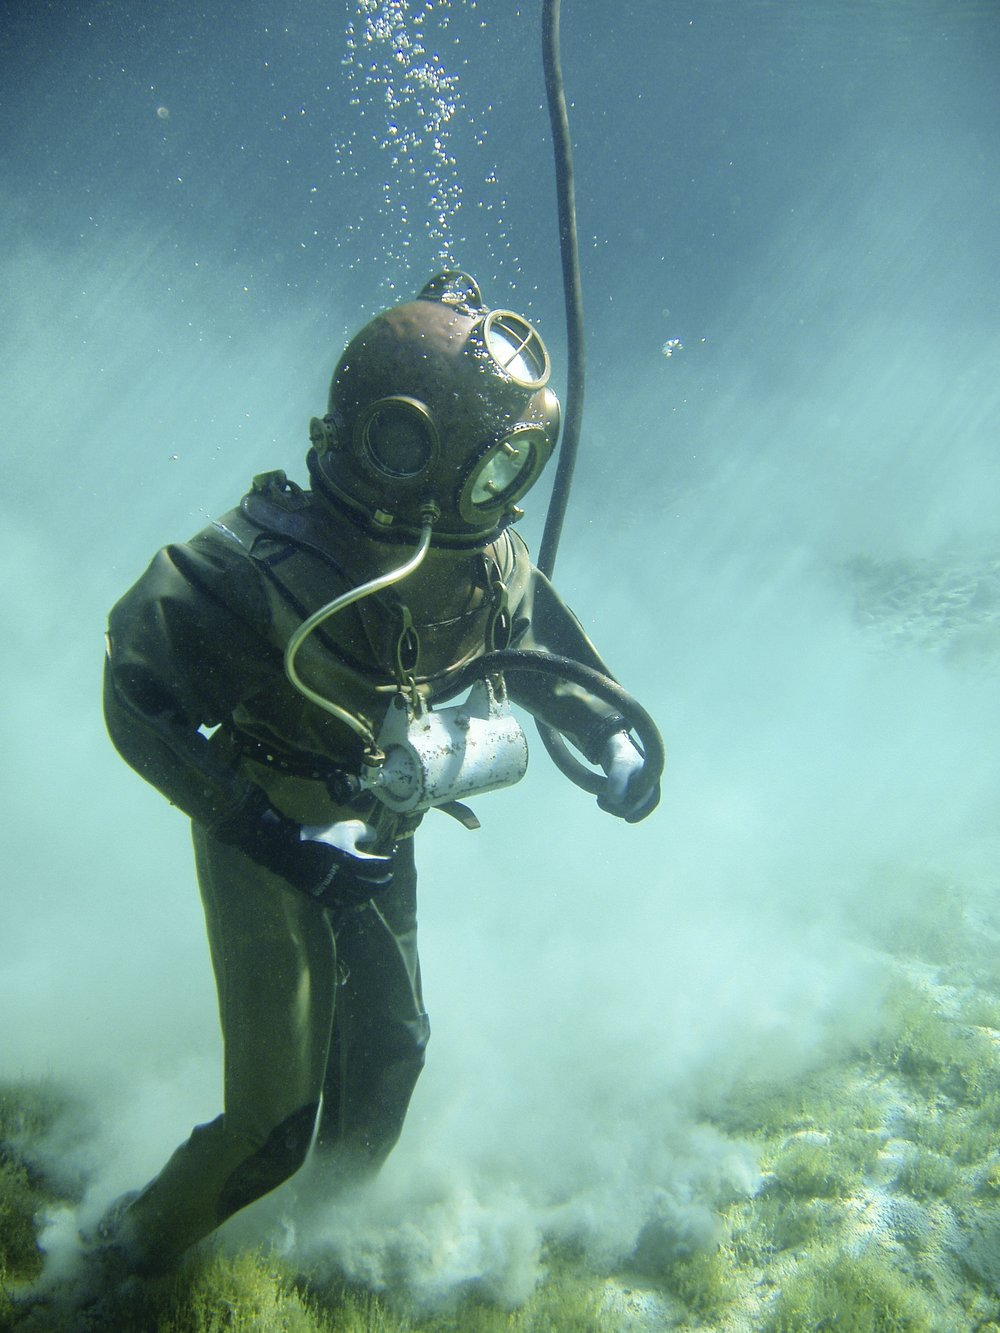 underwater-divers-helmet-diver-historically-54306.jpeg